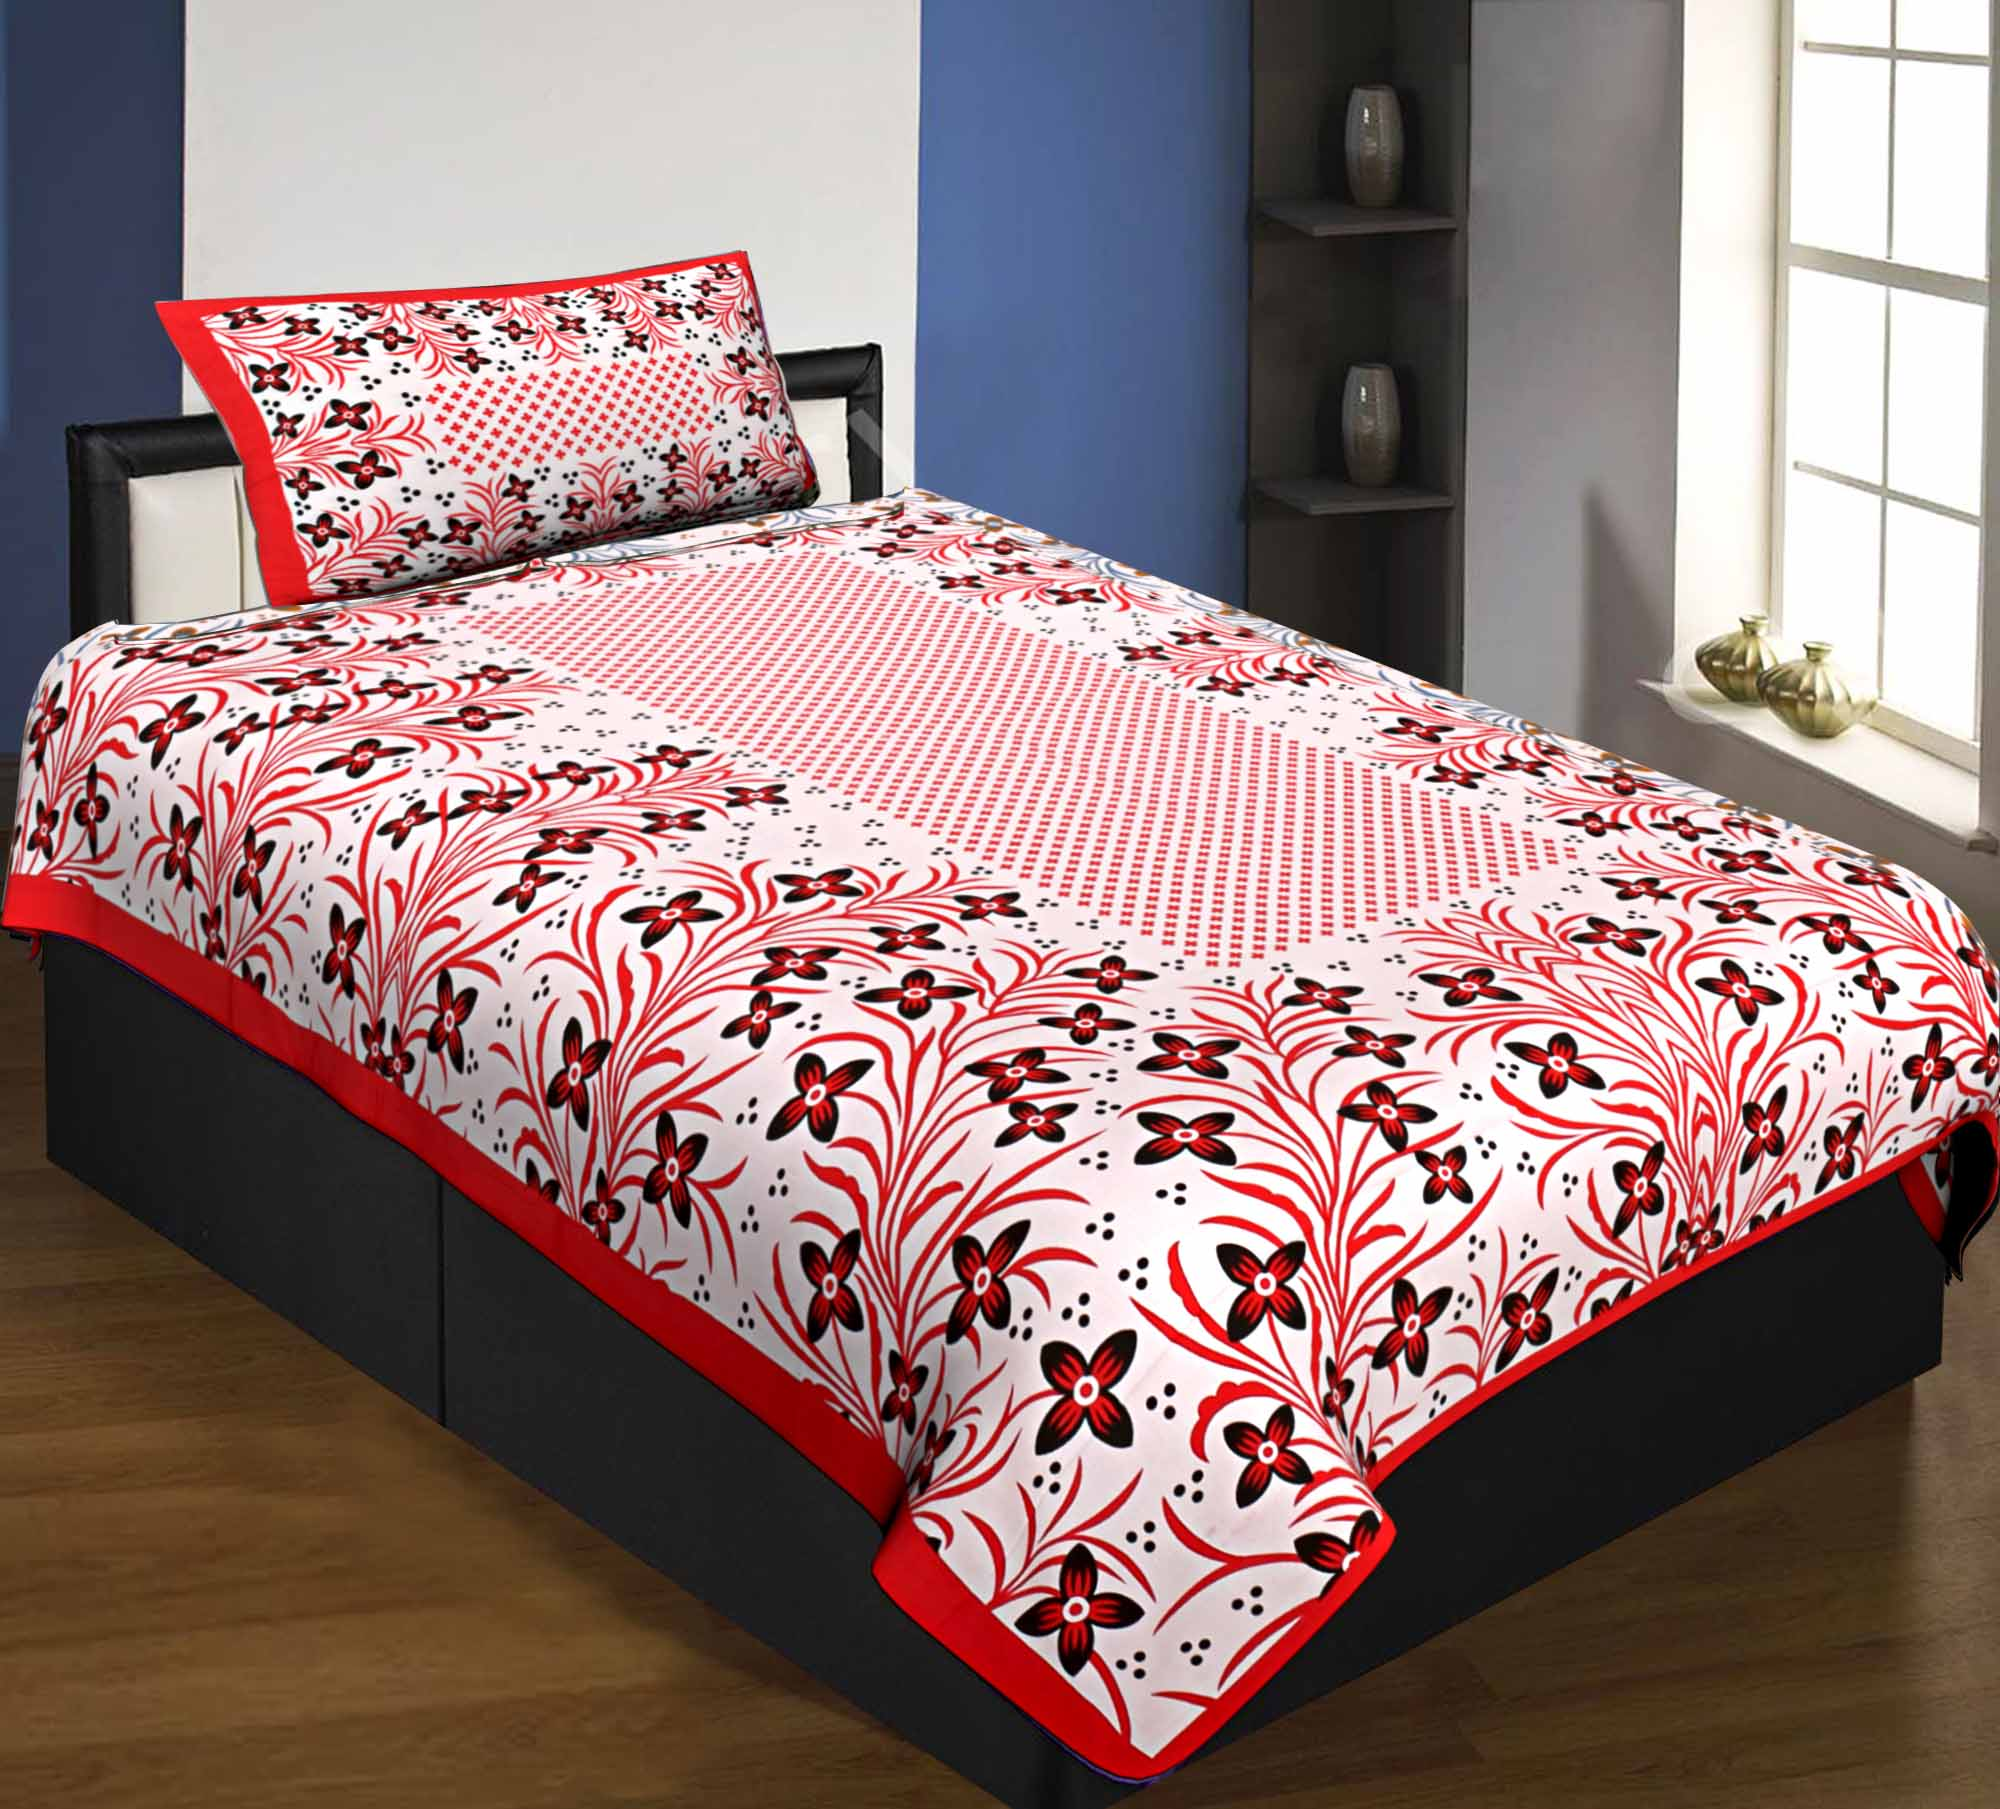 Single Bedsheet Pure Cotton Red Border with Flower and Leaf Pattern